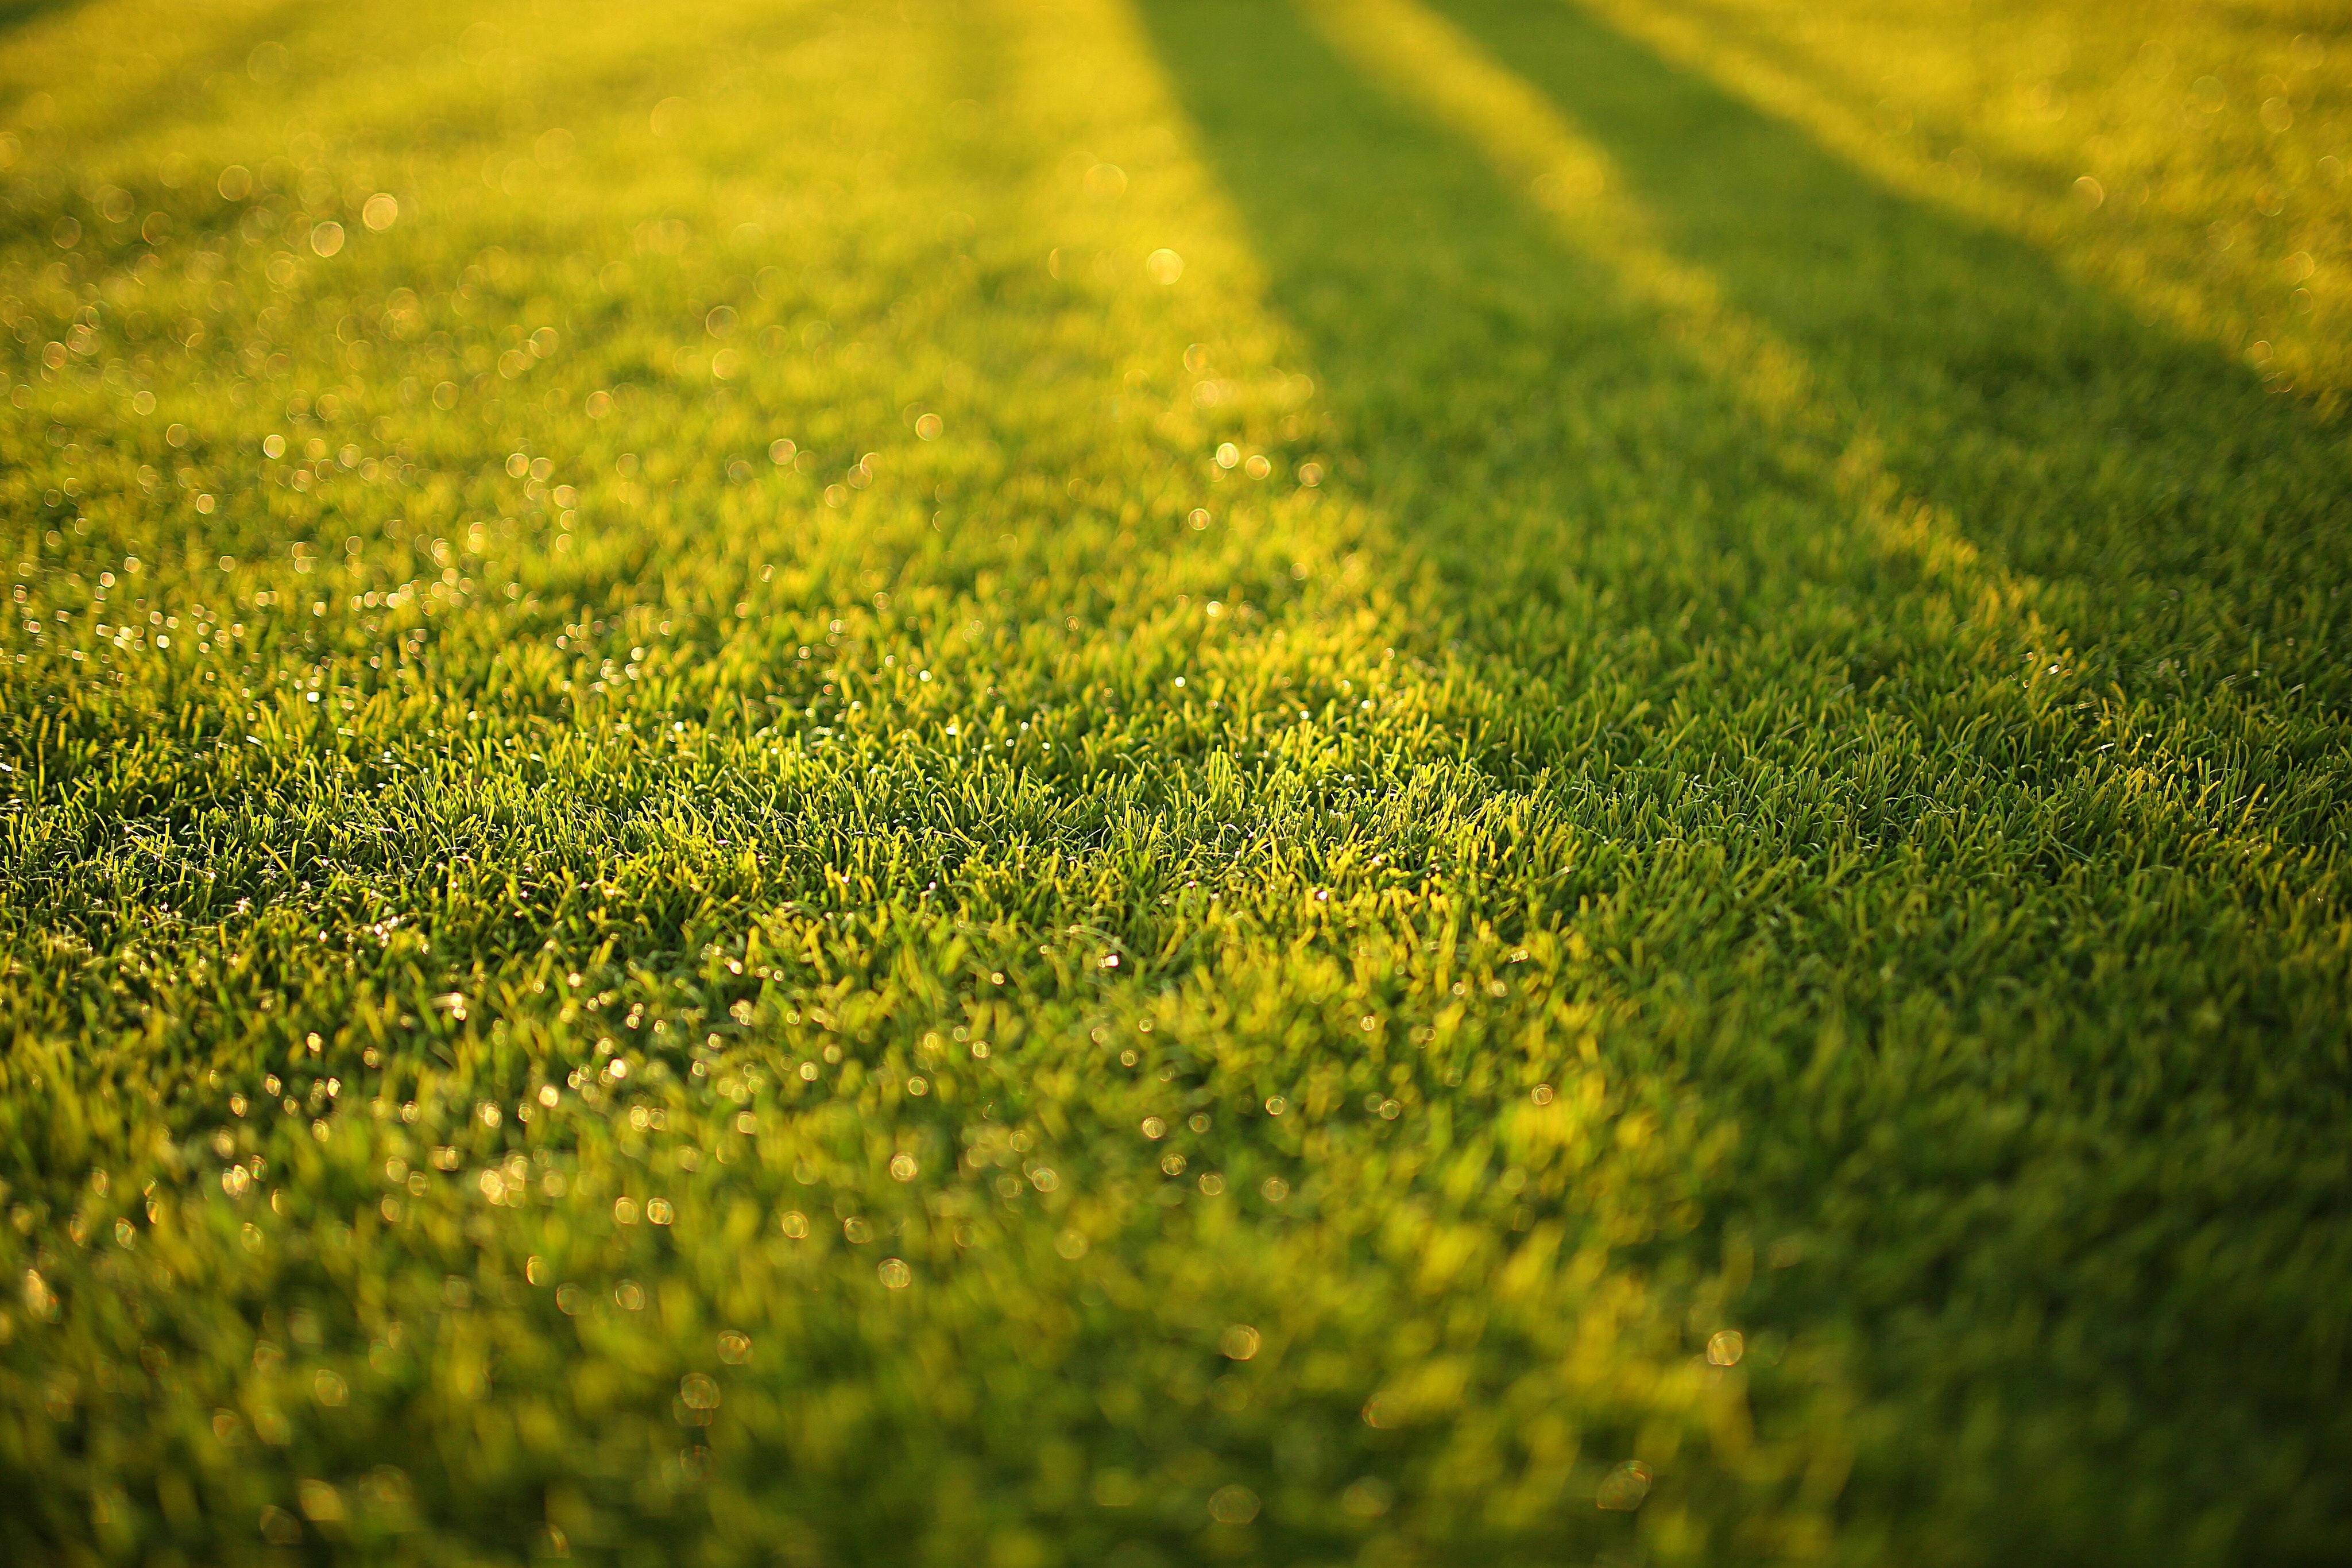 The 10 Best Lawn Maintenance Projects Based On How Much Time You Have